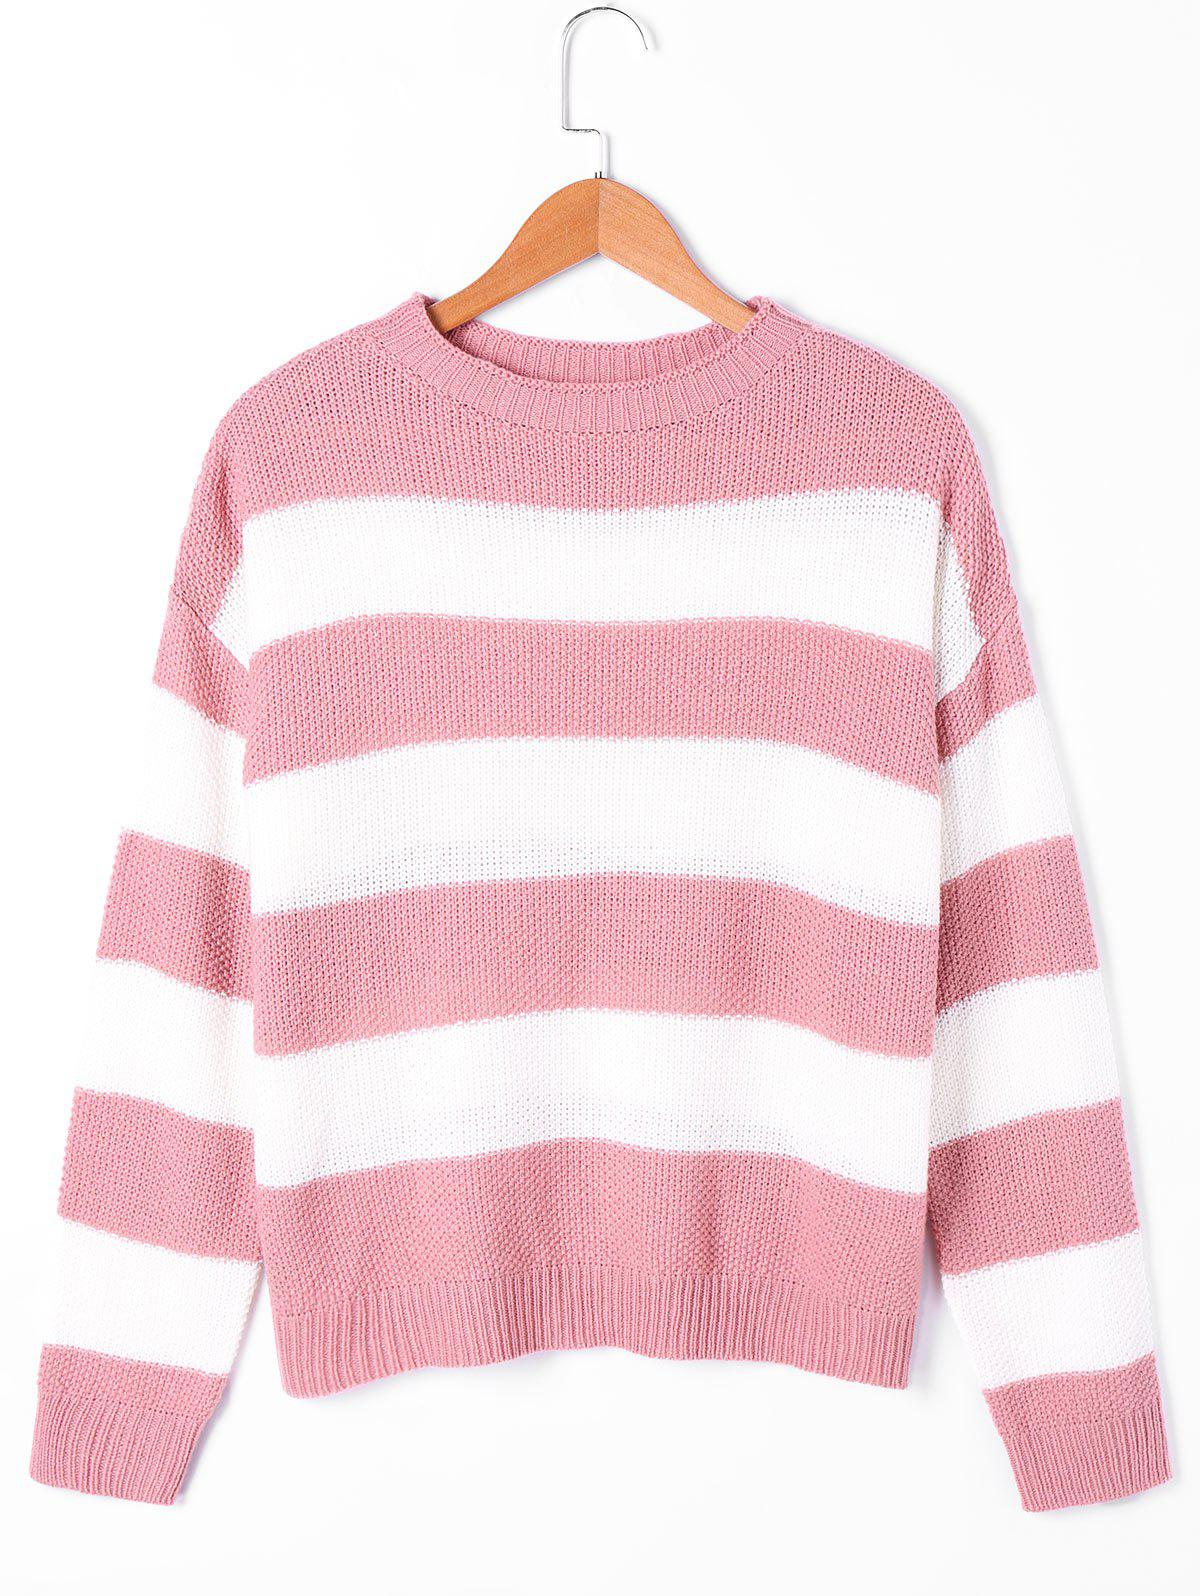 Chic Two Tone Crew Neck Striped Sweater